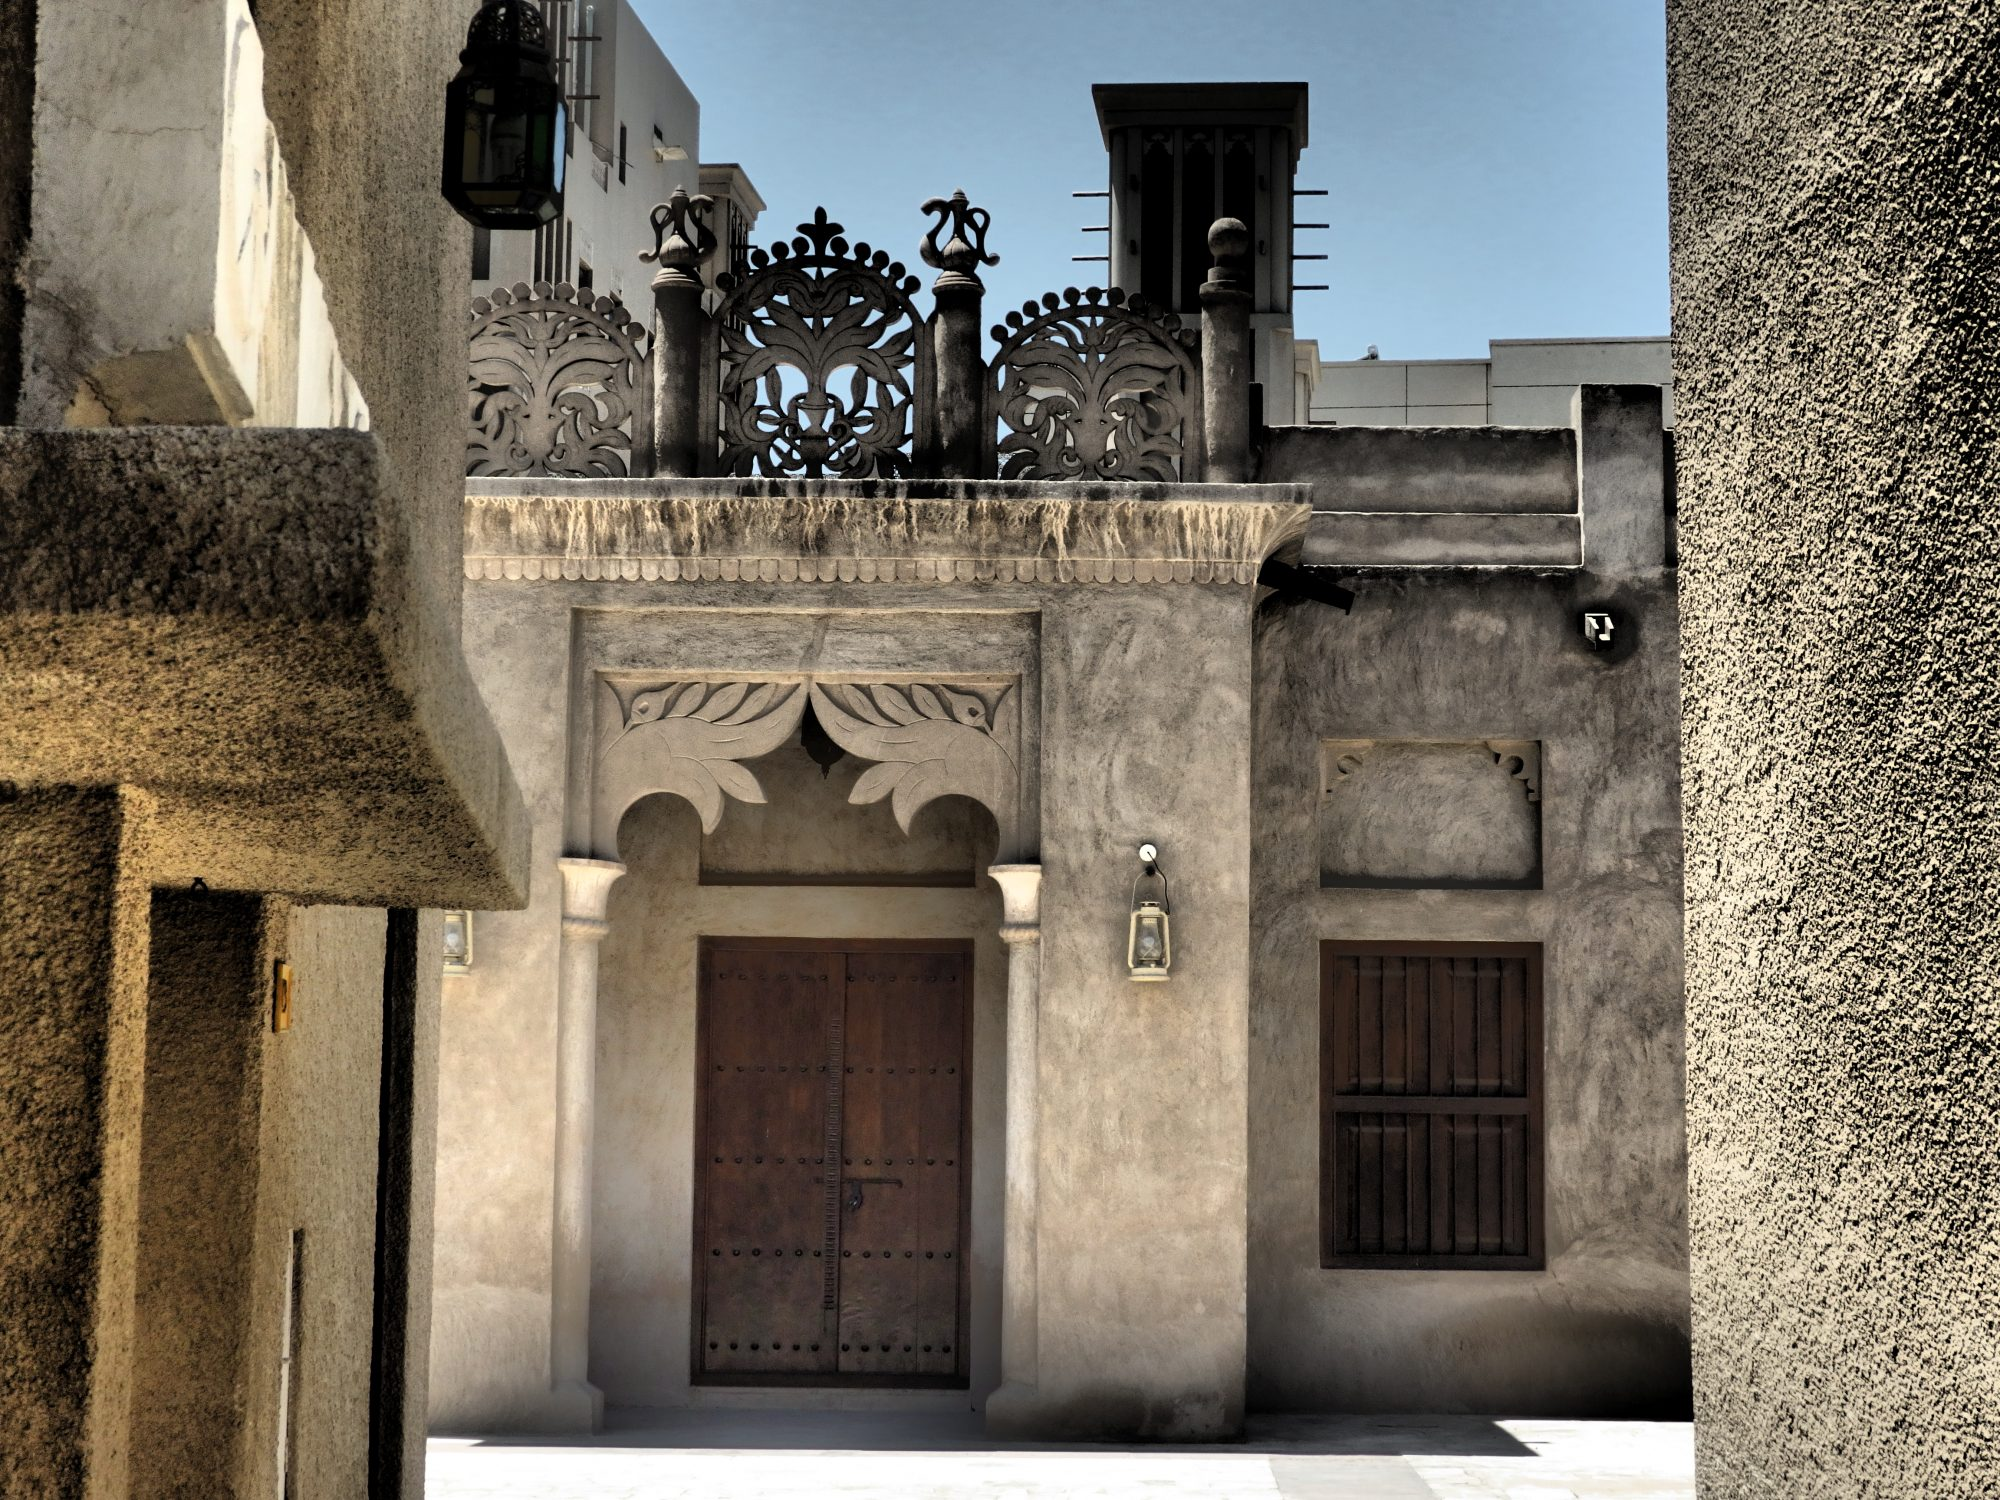 a streetscape in Old Dubai